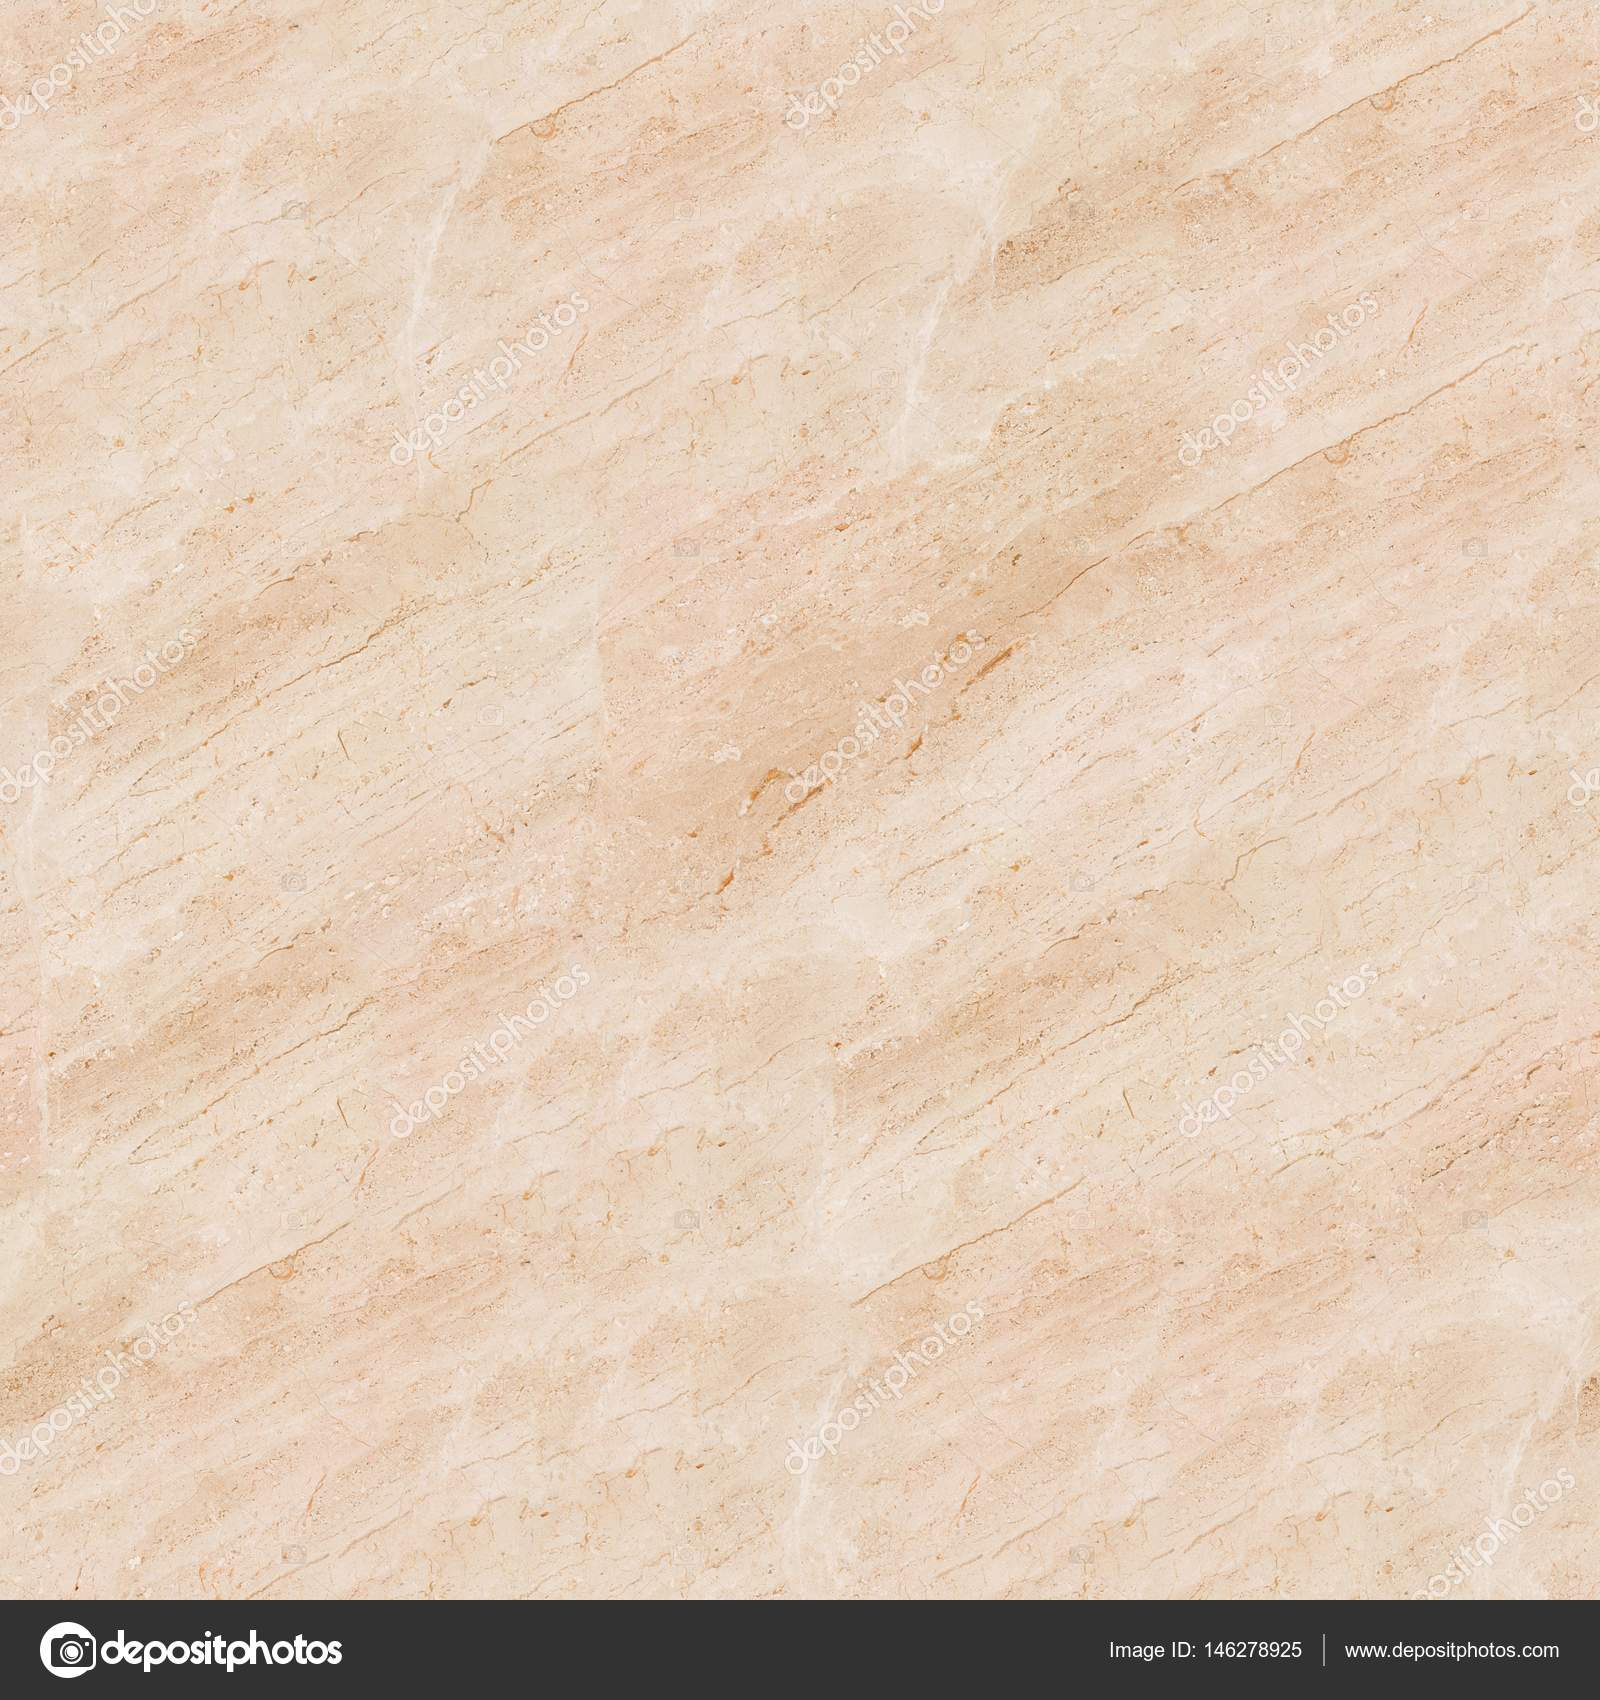 Beige Cream White Crack Marble Texture Seamless Square Background Tile Ready High Resolution Photo By Yamabikay